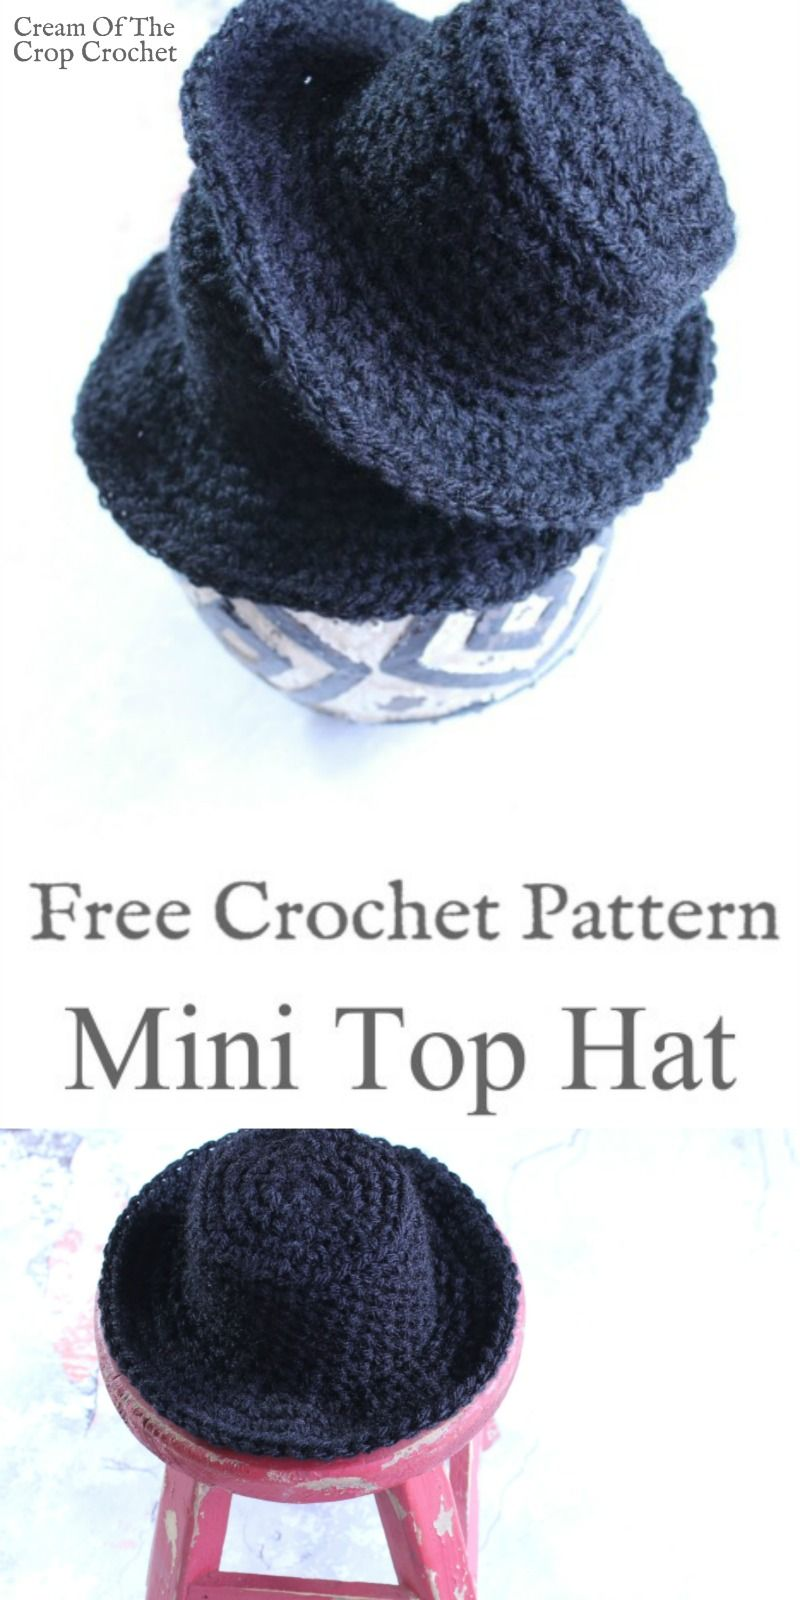 Mini Top Hat Crochet Pattern | Cream Of The Crop Crochet | Needle ...